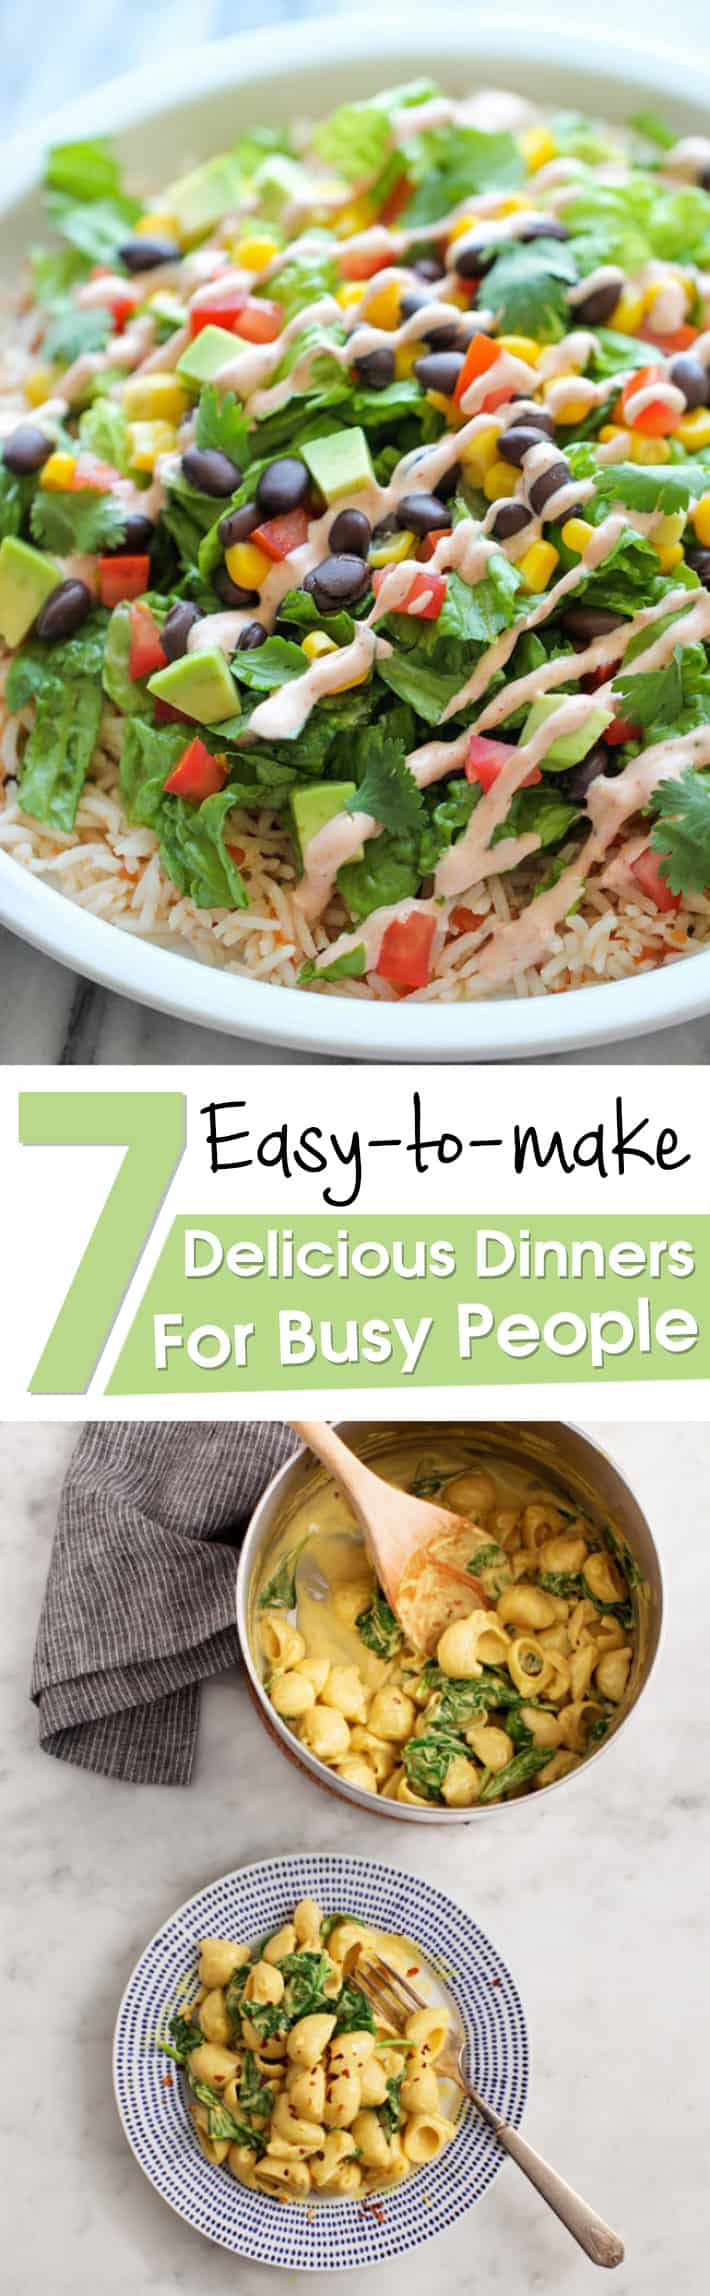 Easy-to-make Seven Delicious Dinners For Busy People